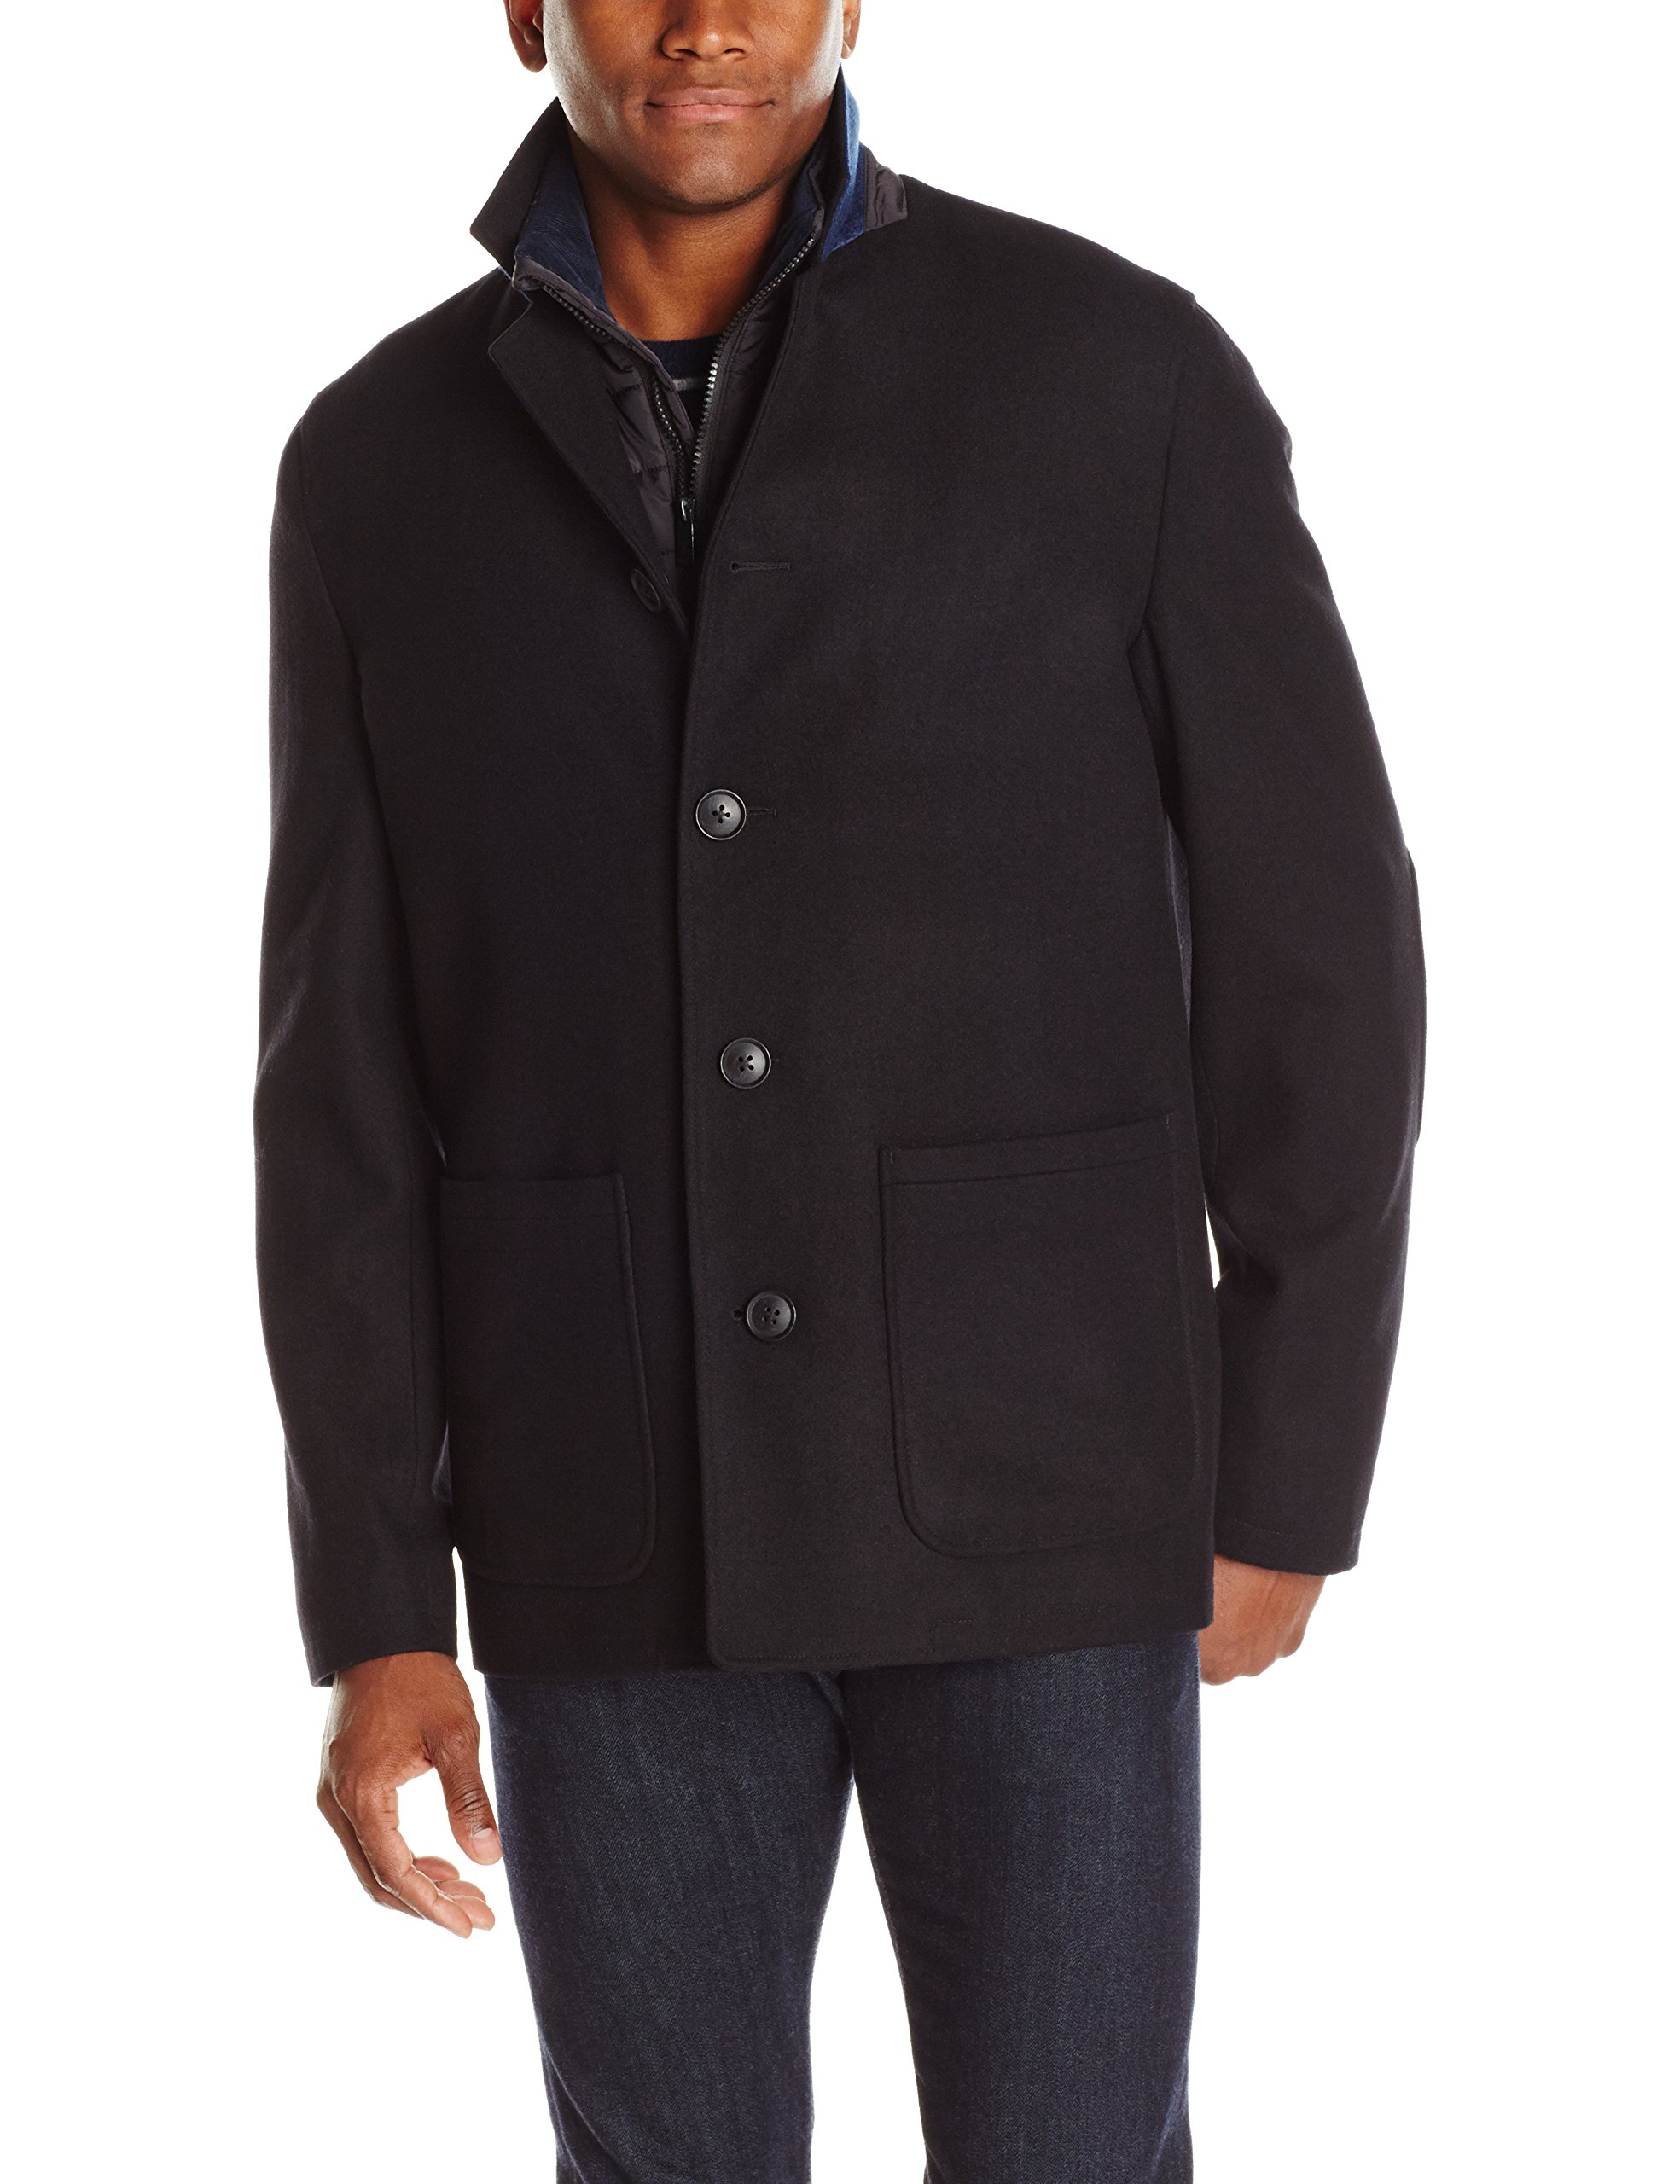 Nick Graham Men's Triboro 3 in 1 Wool Jacket with Vest, Black, X-Large